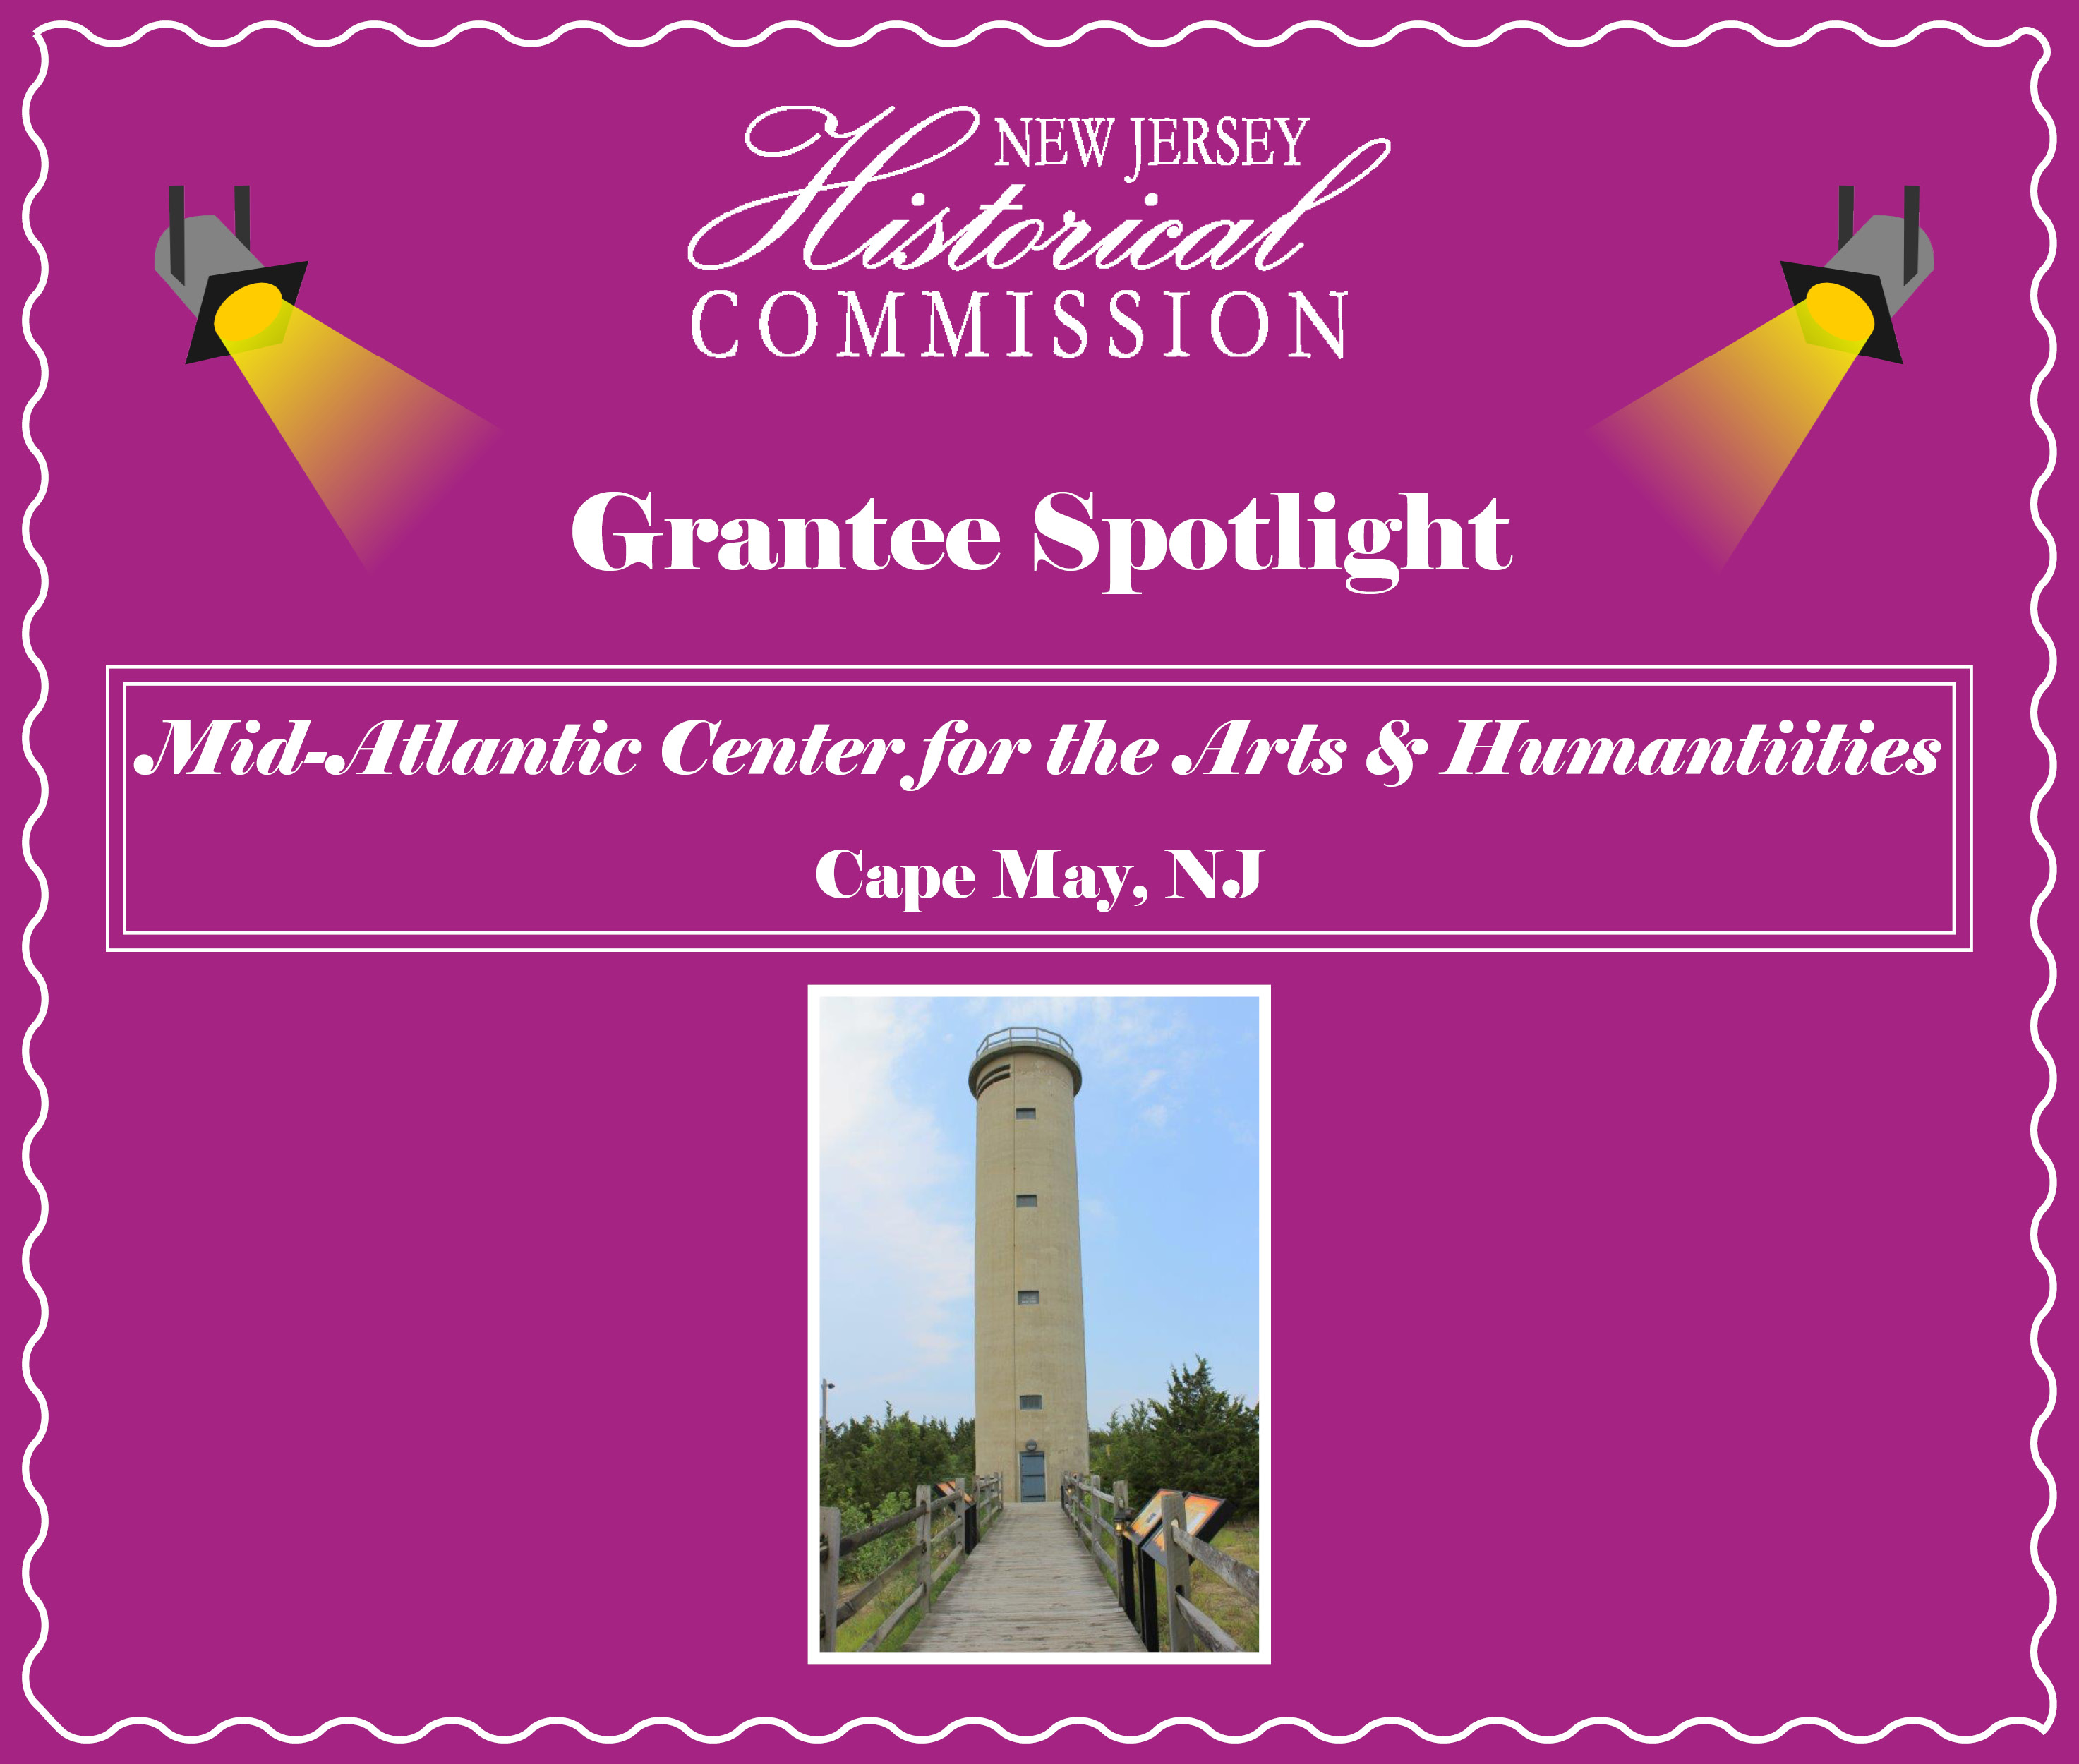 New Jersey Historical Commission (NJHC) Grantee Spotlight: The Mid-Atlantic Center for the Arts & Humanities